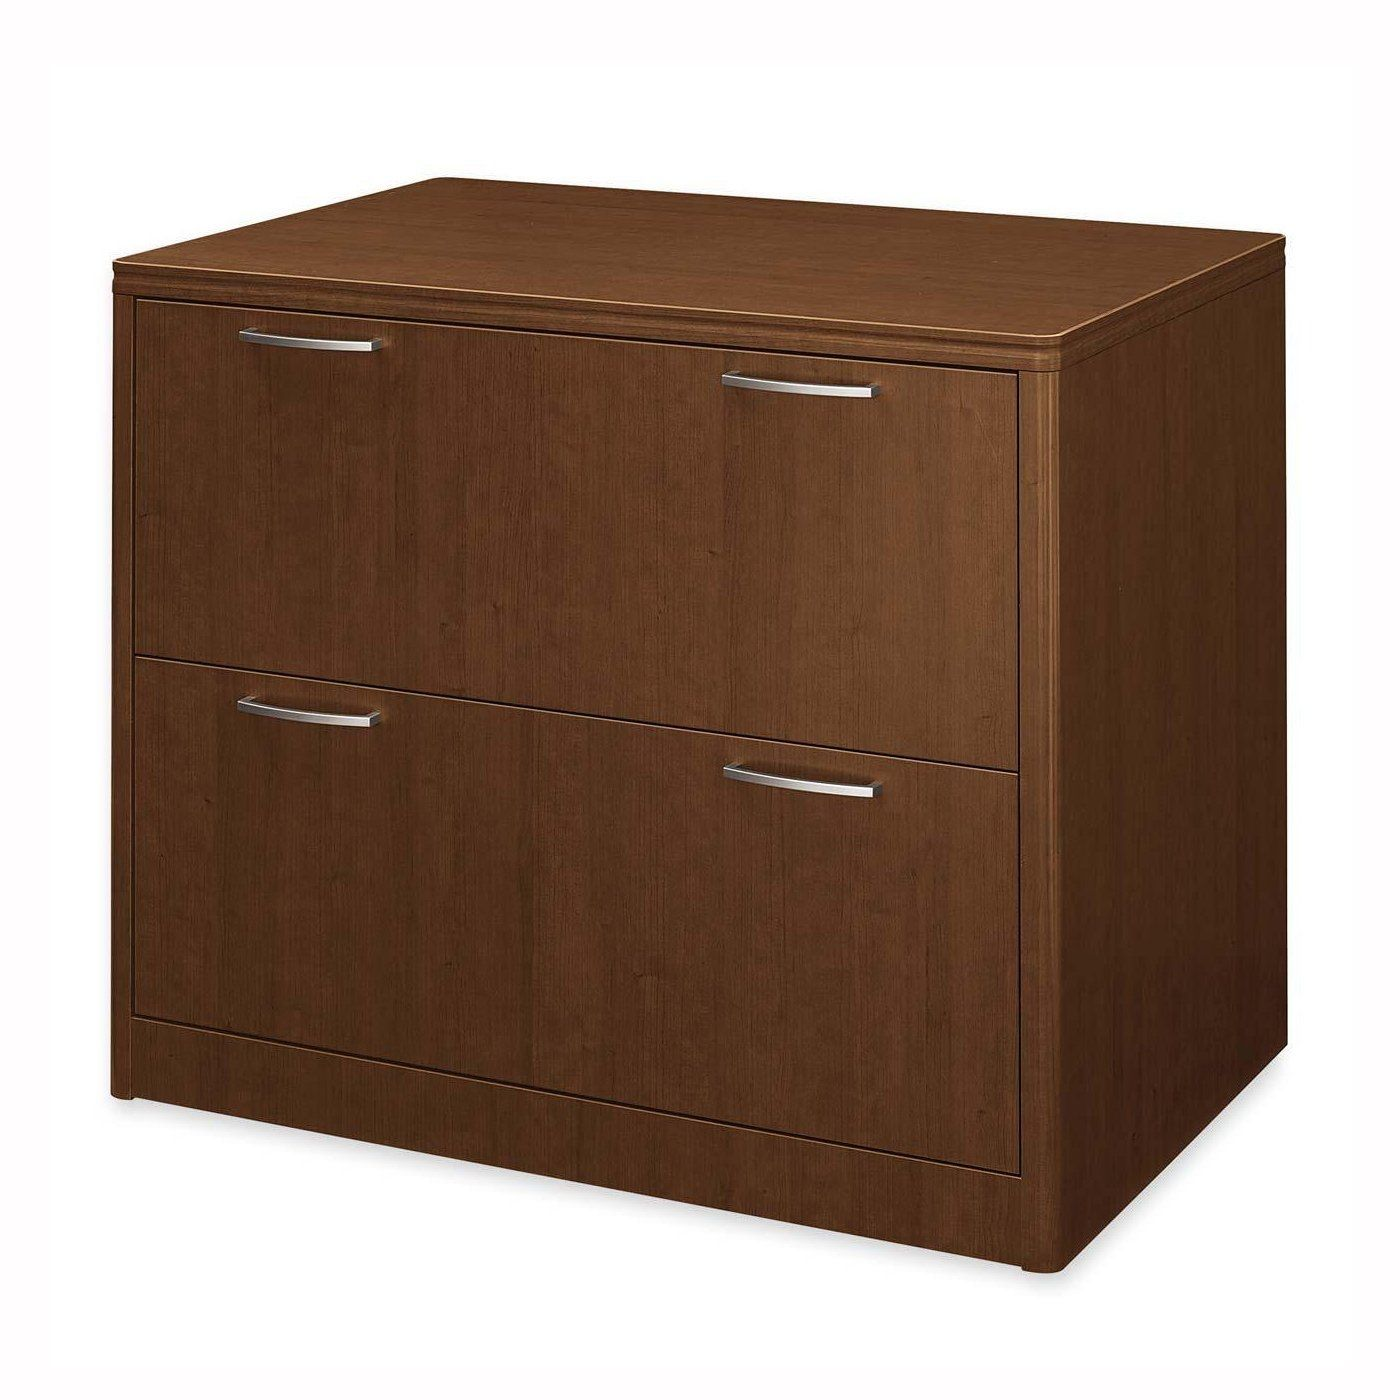 wooden awesome x drawer for size cabinet furniture cabinets file hangers staples wood solid